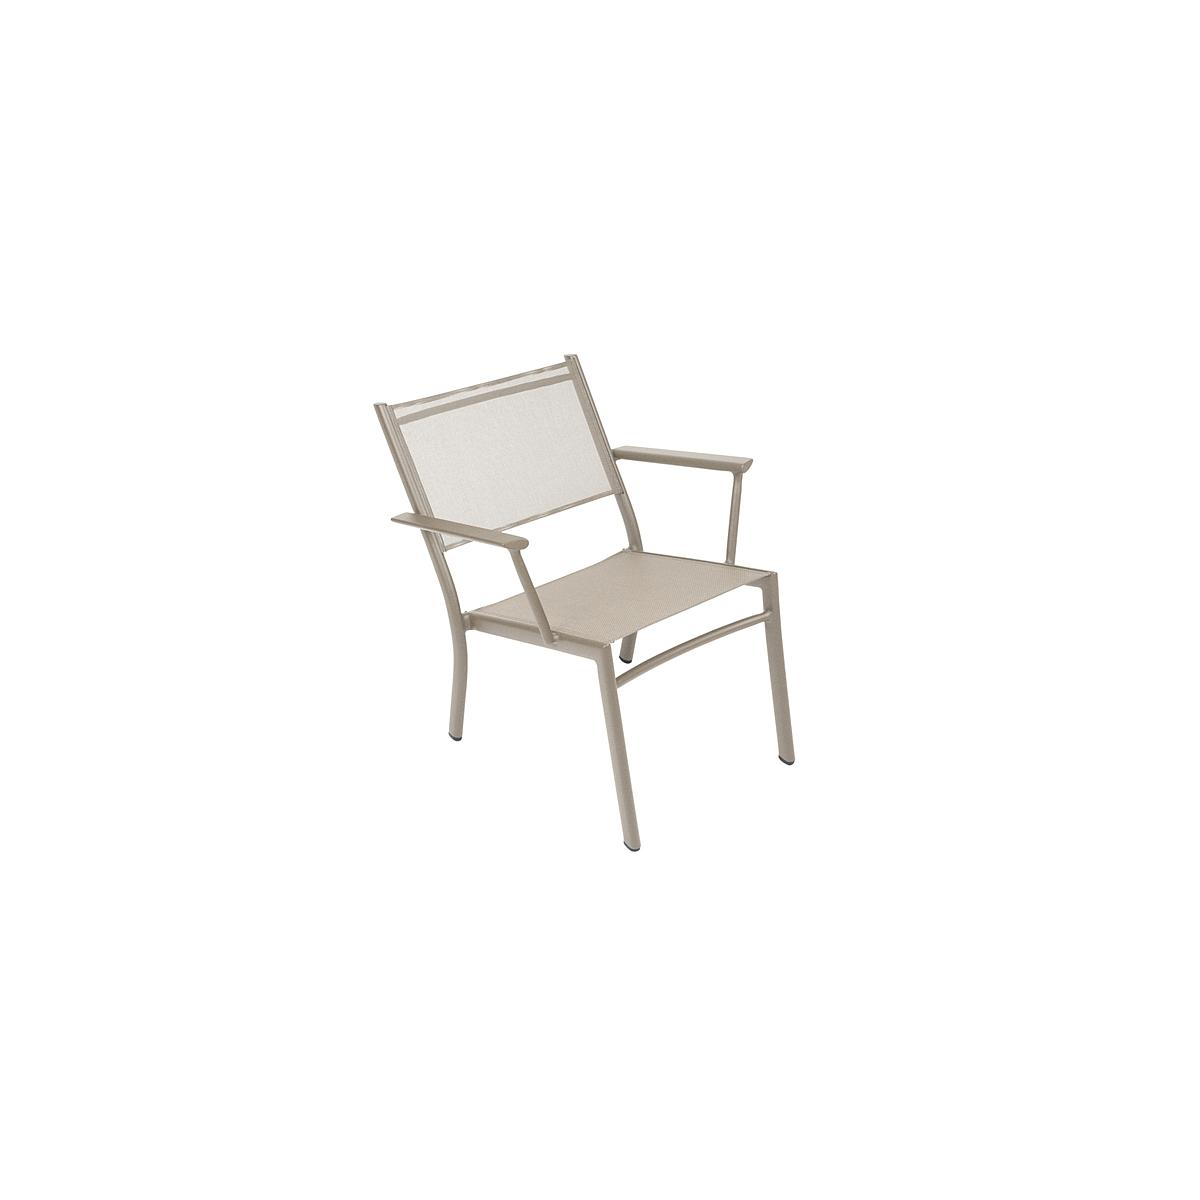 COSTA by Fermob Fauteuil bas muscade